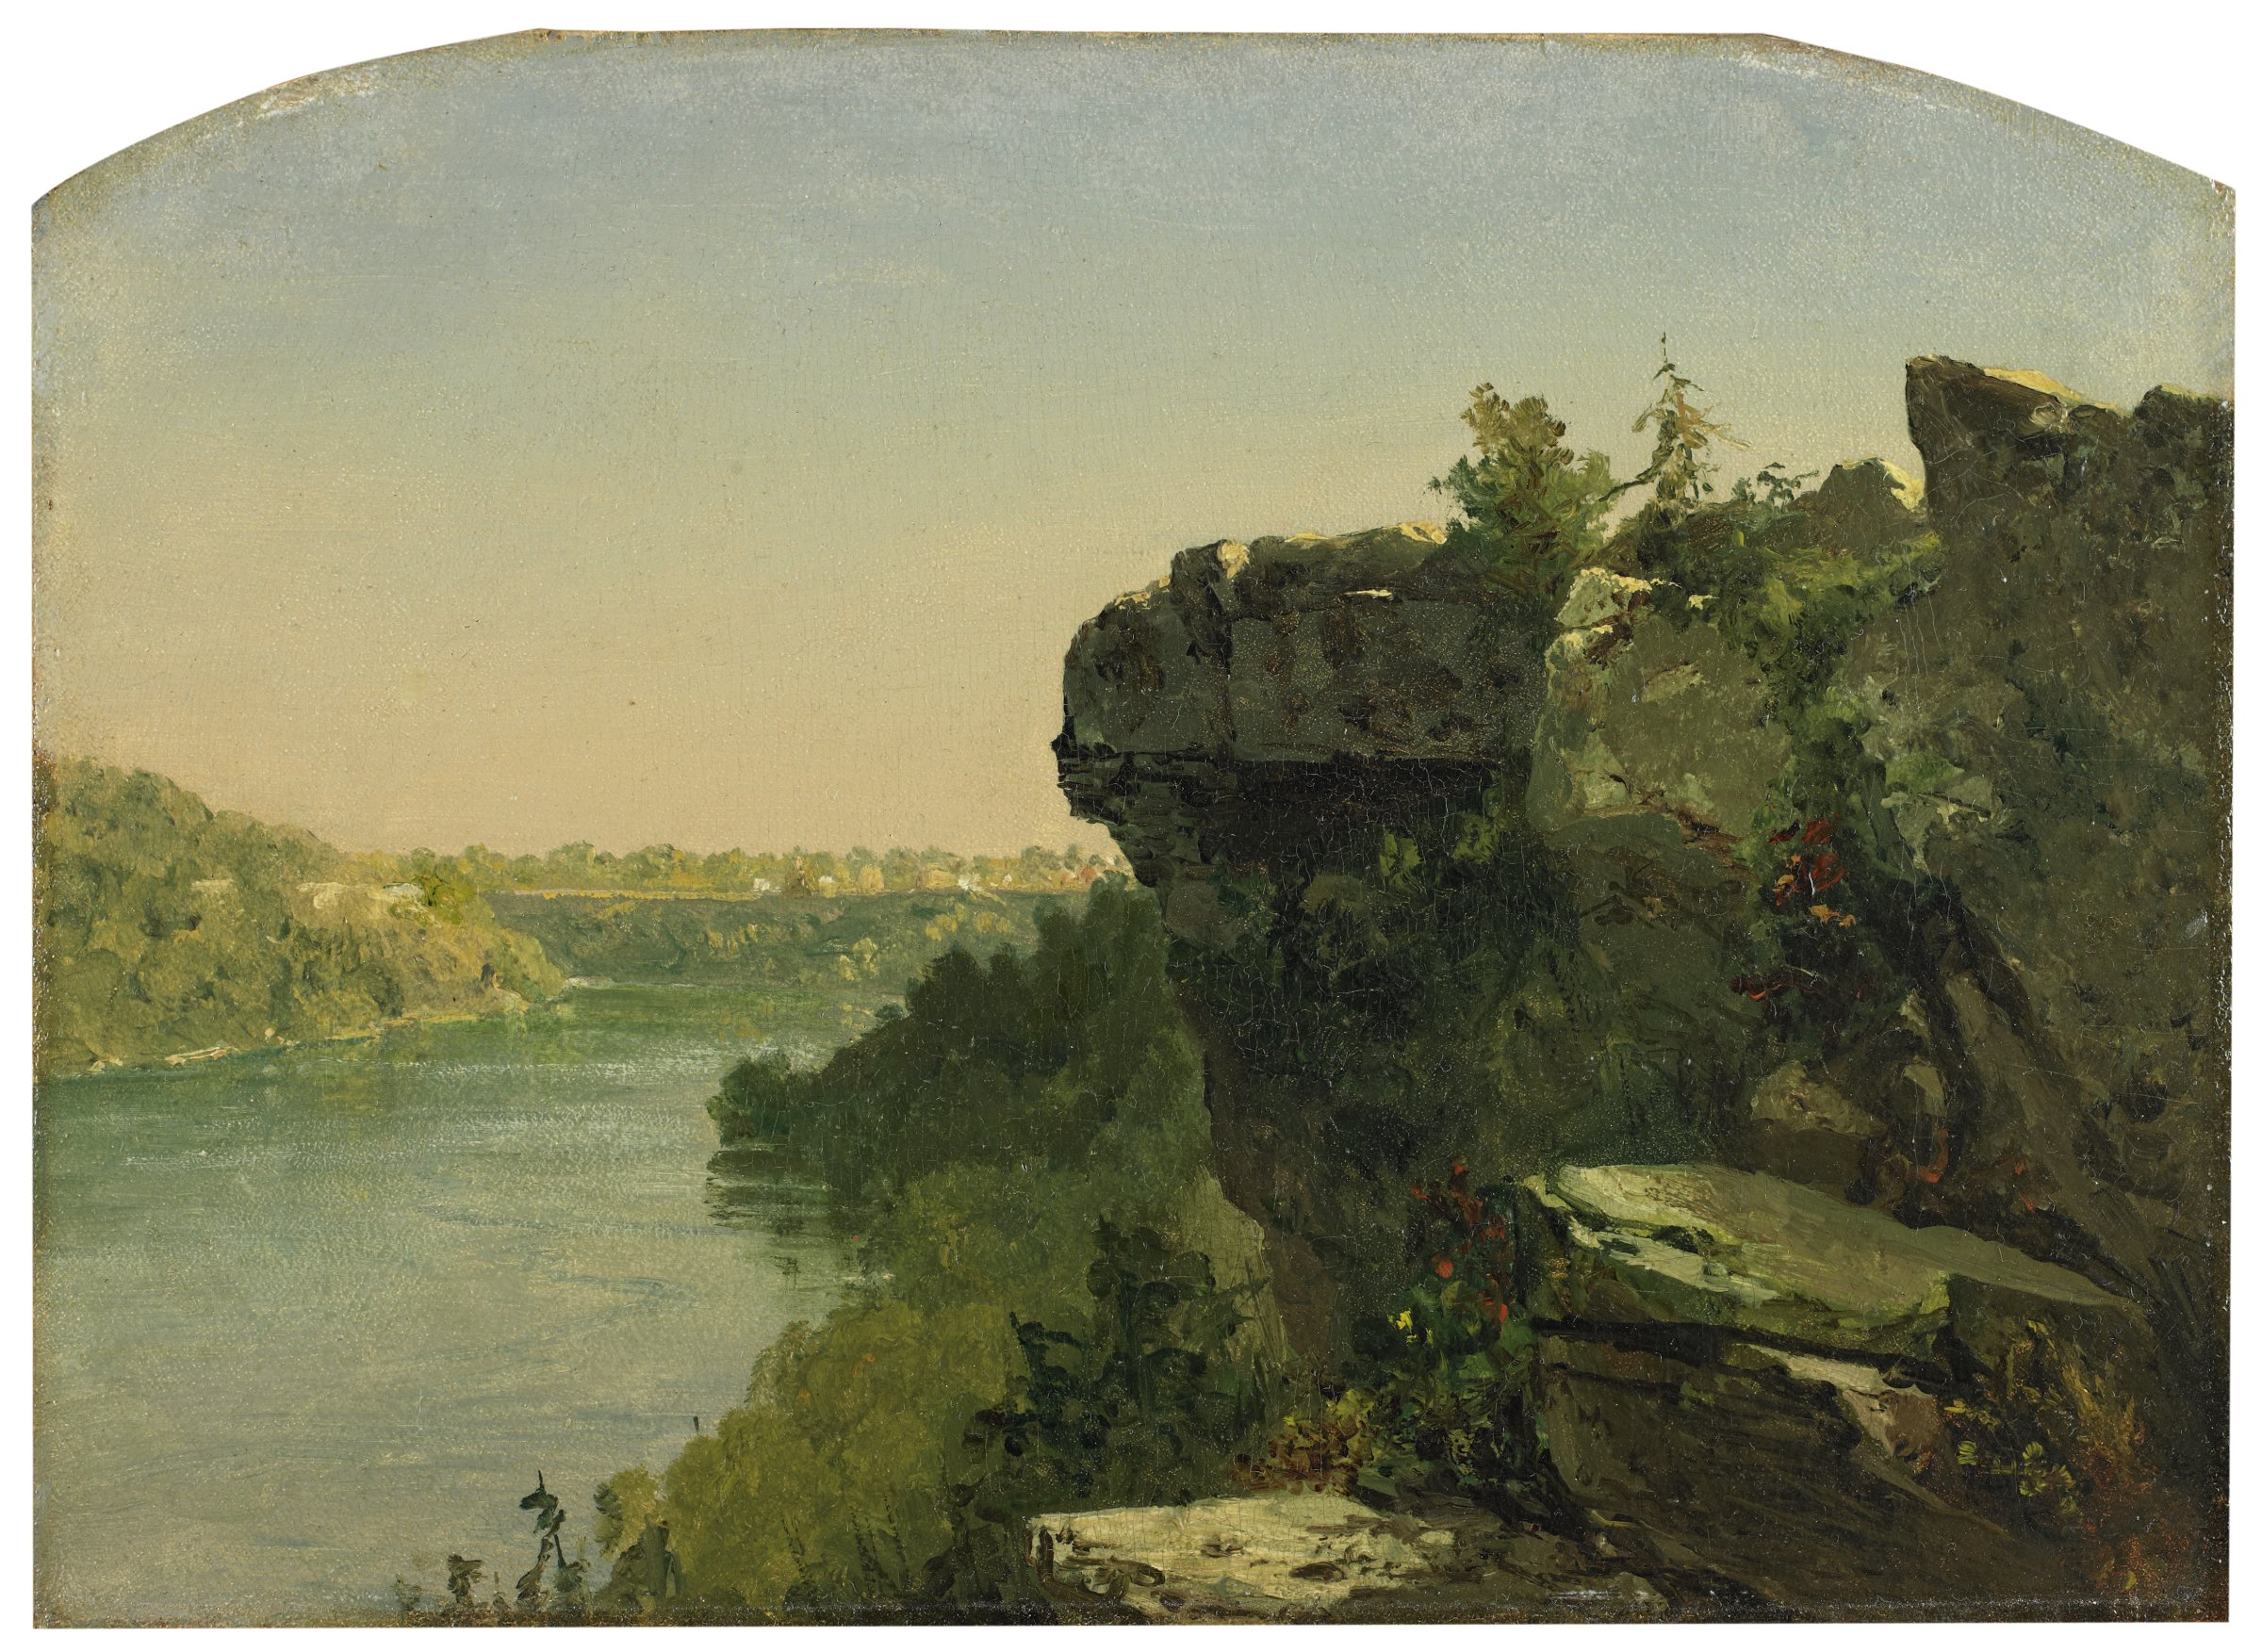 Overlooking the River From the Cliffs, John Frederick Kensett, oil on paper laid down on canvas